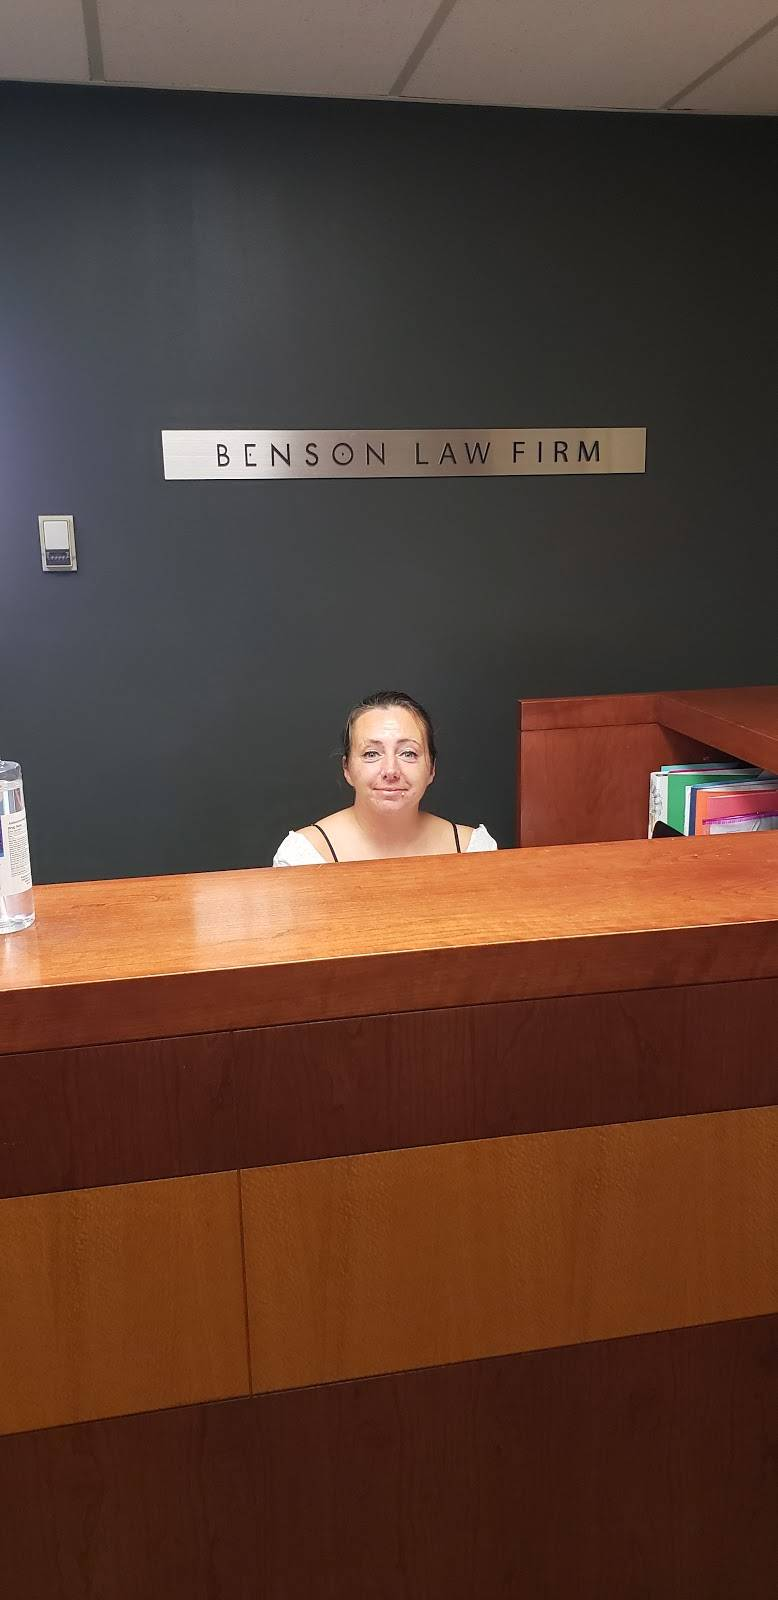 Benson Law Firm - lawyer  | Photo 2 of 3 | Address: 3473 Fairmount Blvd 2nd floor, Cleveland Heights, OH 44118, USA | Phone: (216) 279-3647